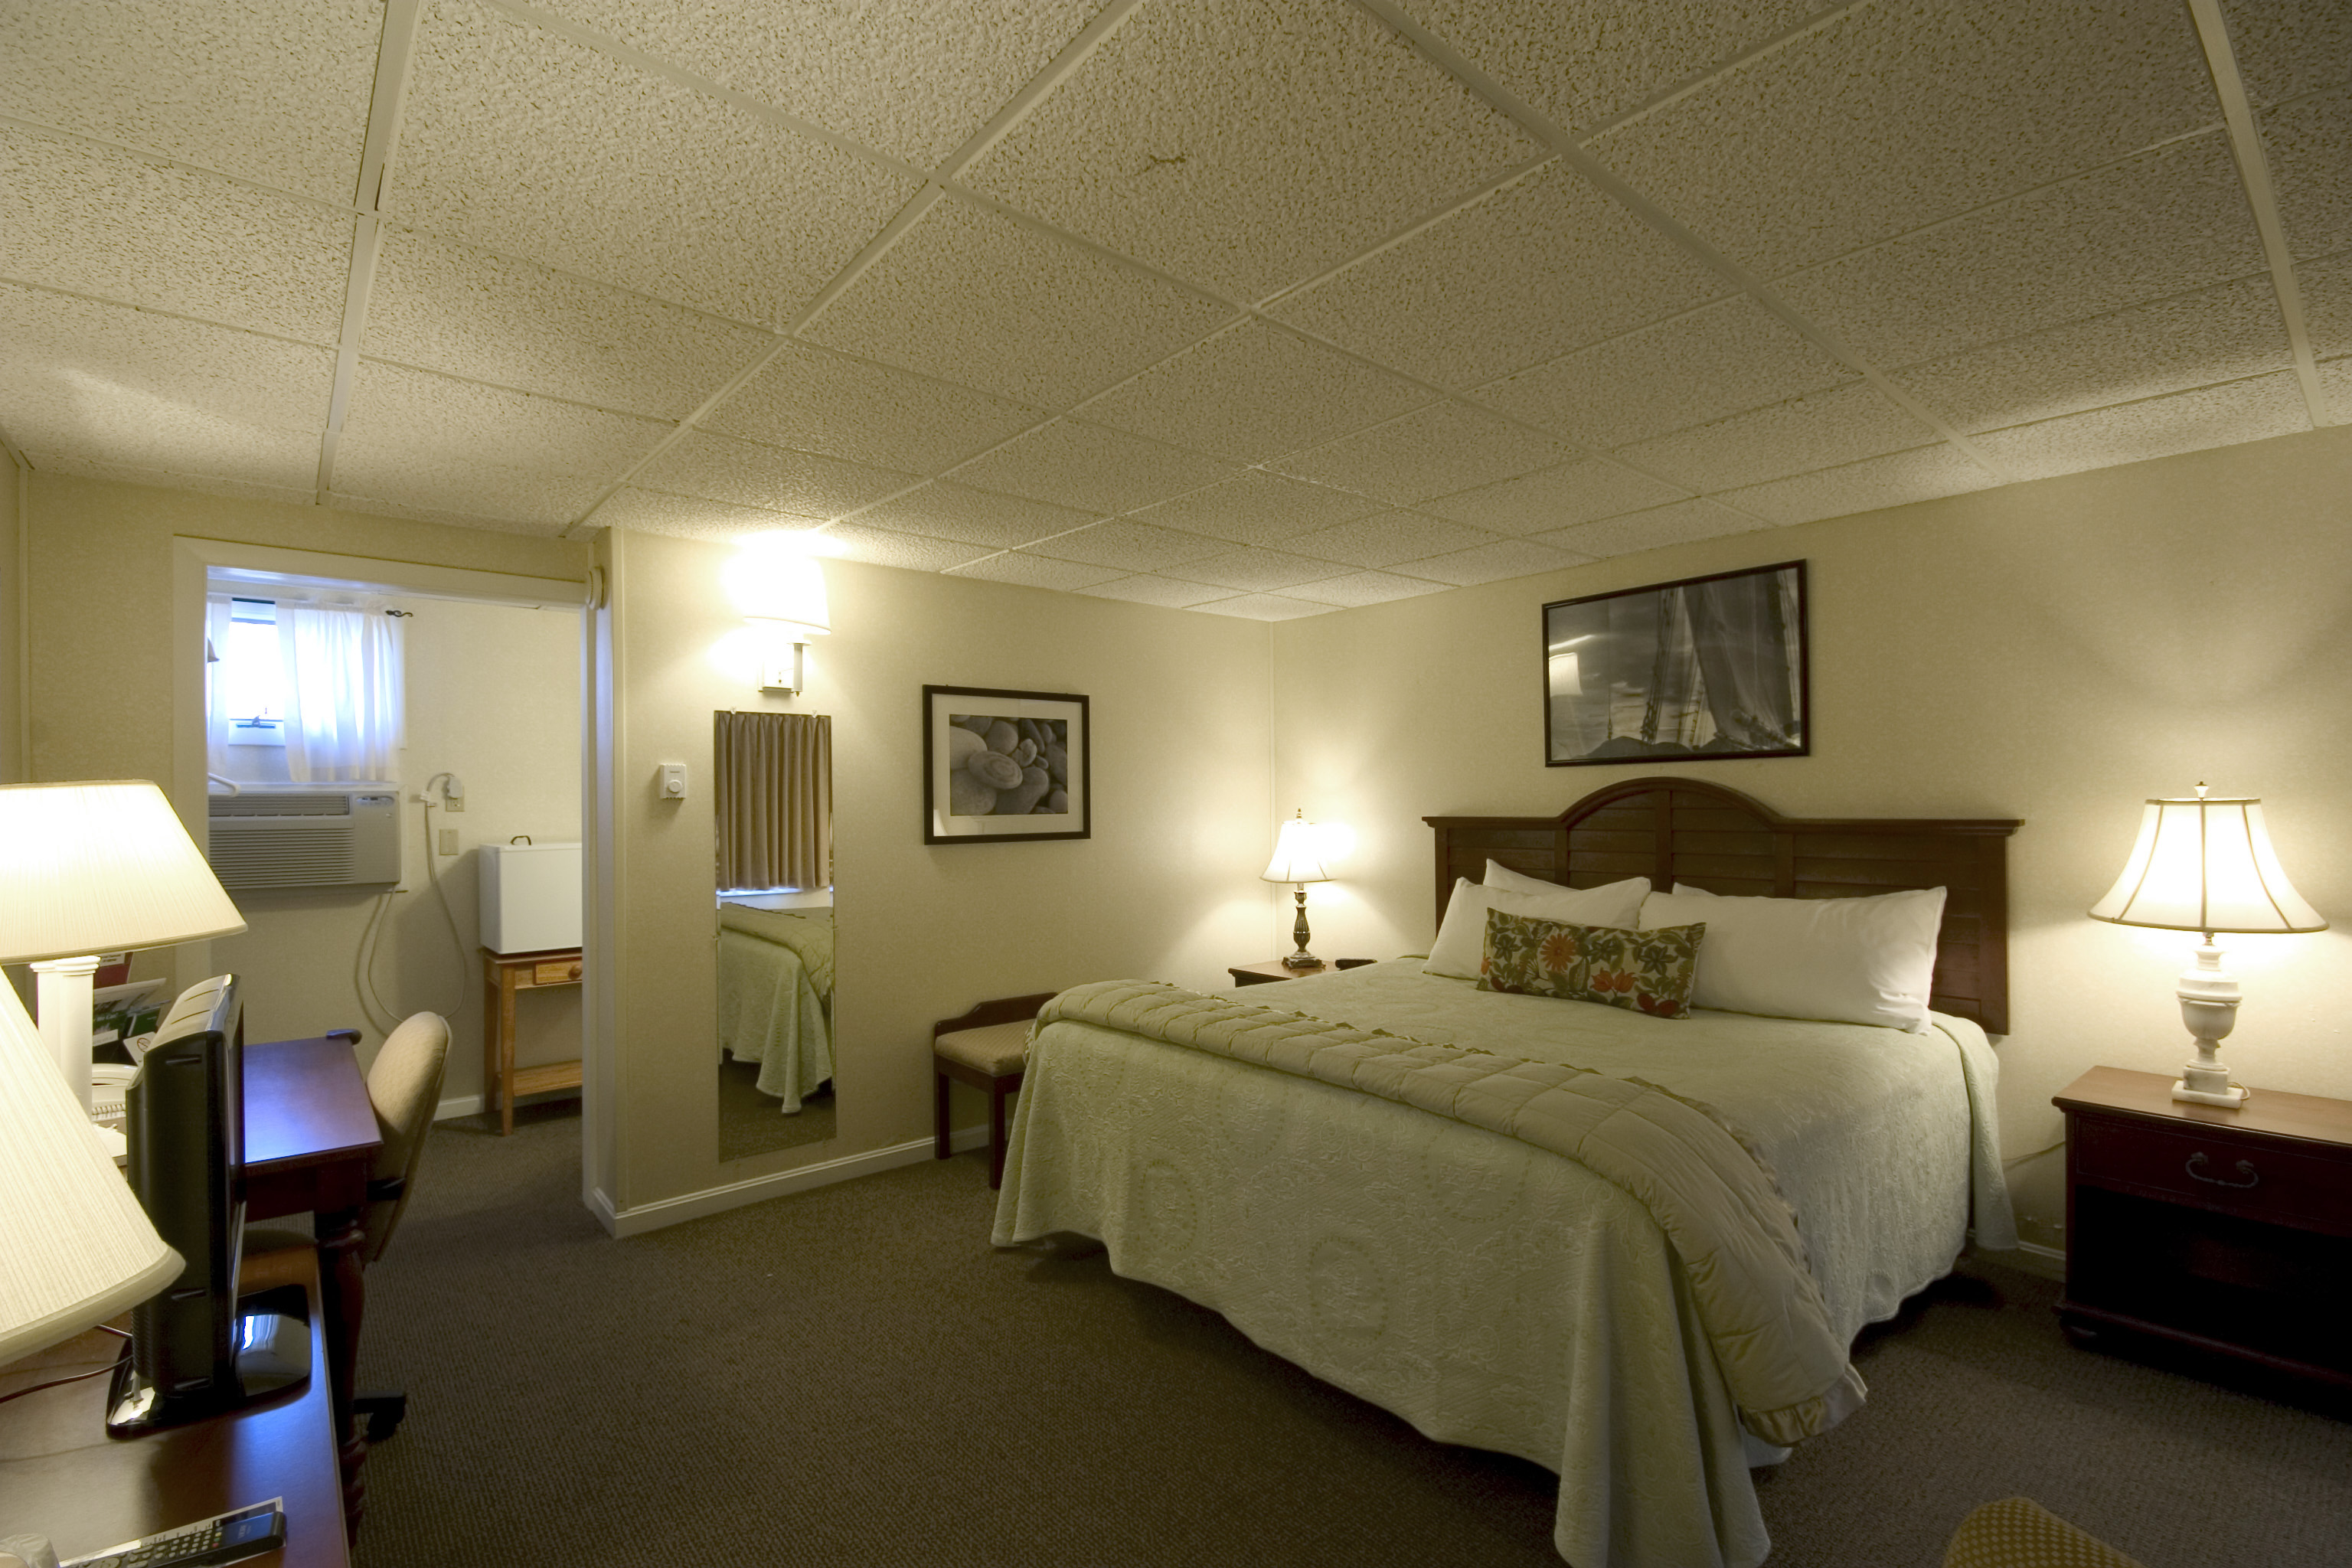 Town Motel - Room 1,2,5,6